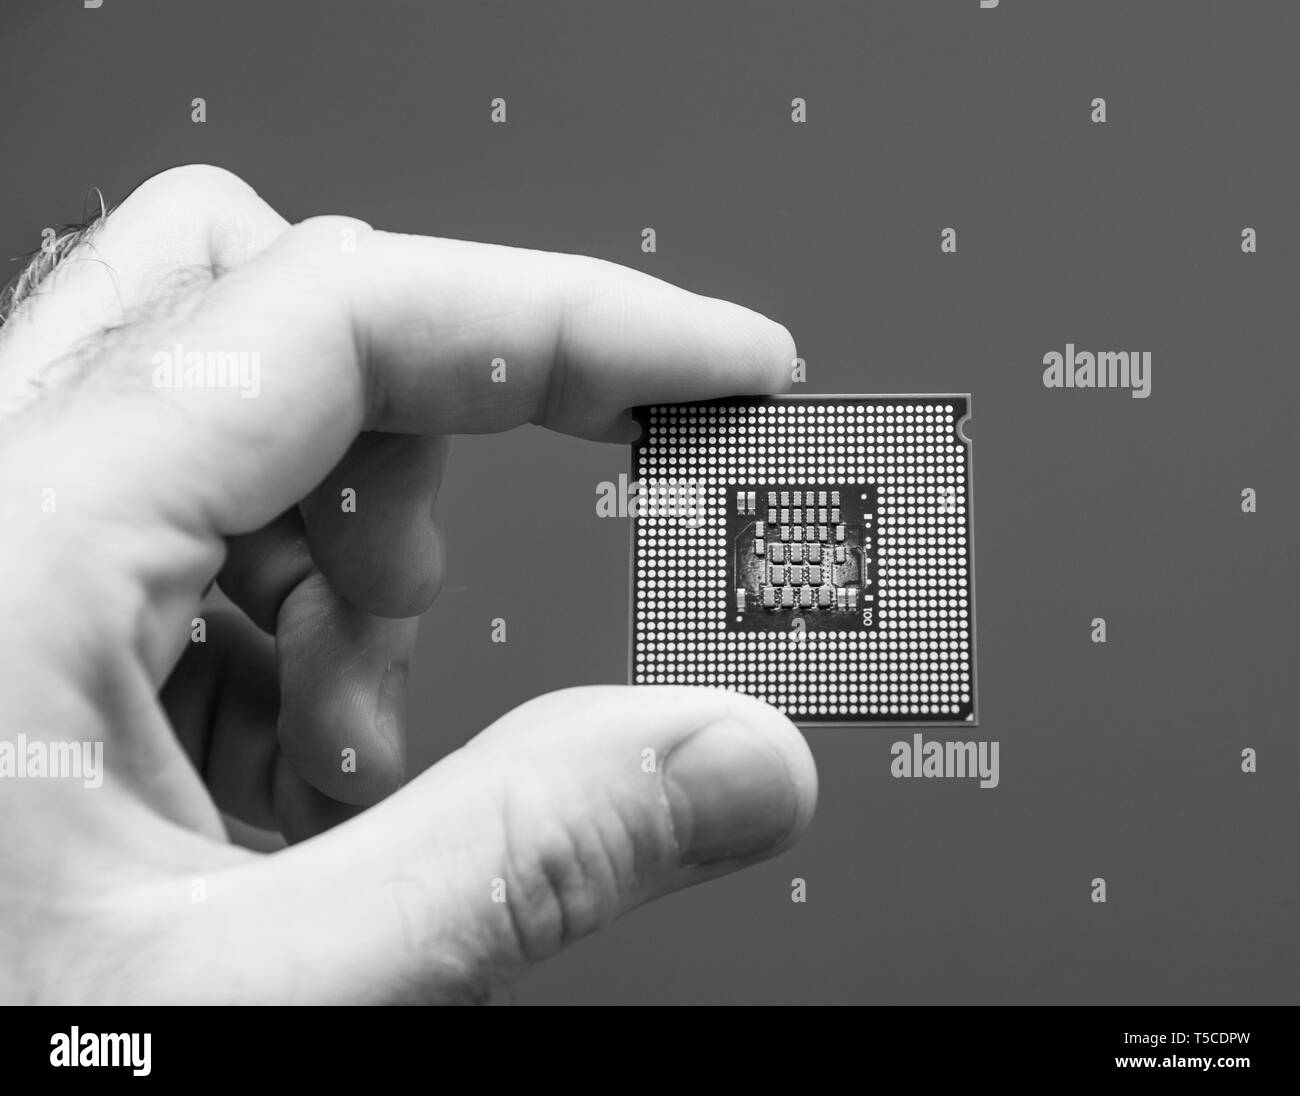 Male IT professional holding in hand used burnt powerful CPU Central processing unit with high core count and elevated frequency - isolated black and white photo - Stock Image